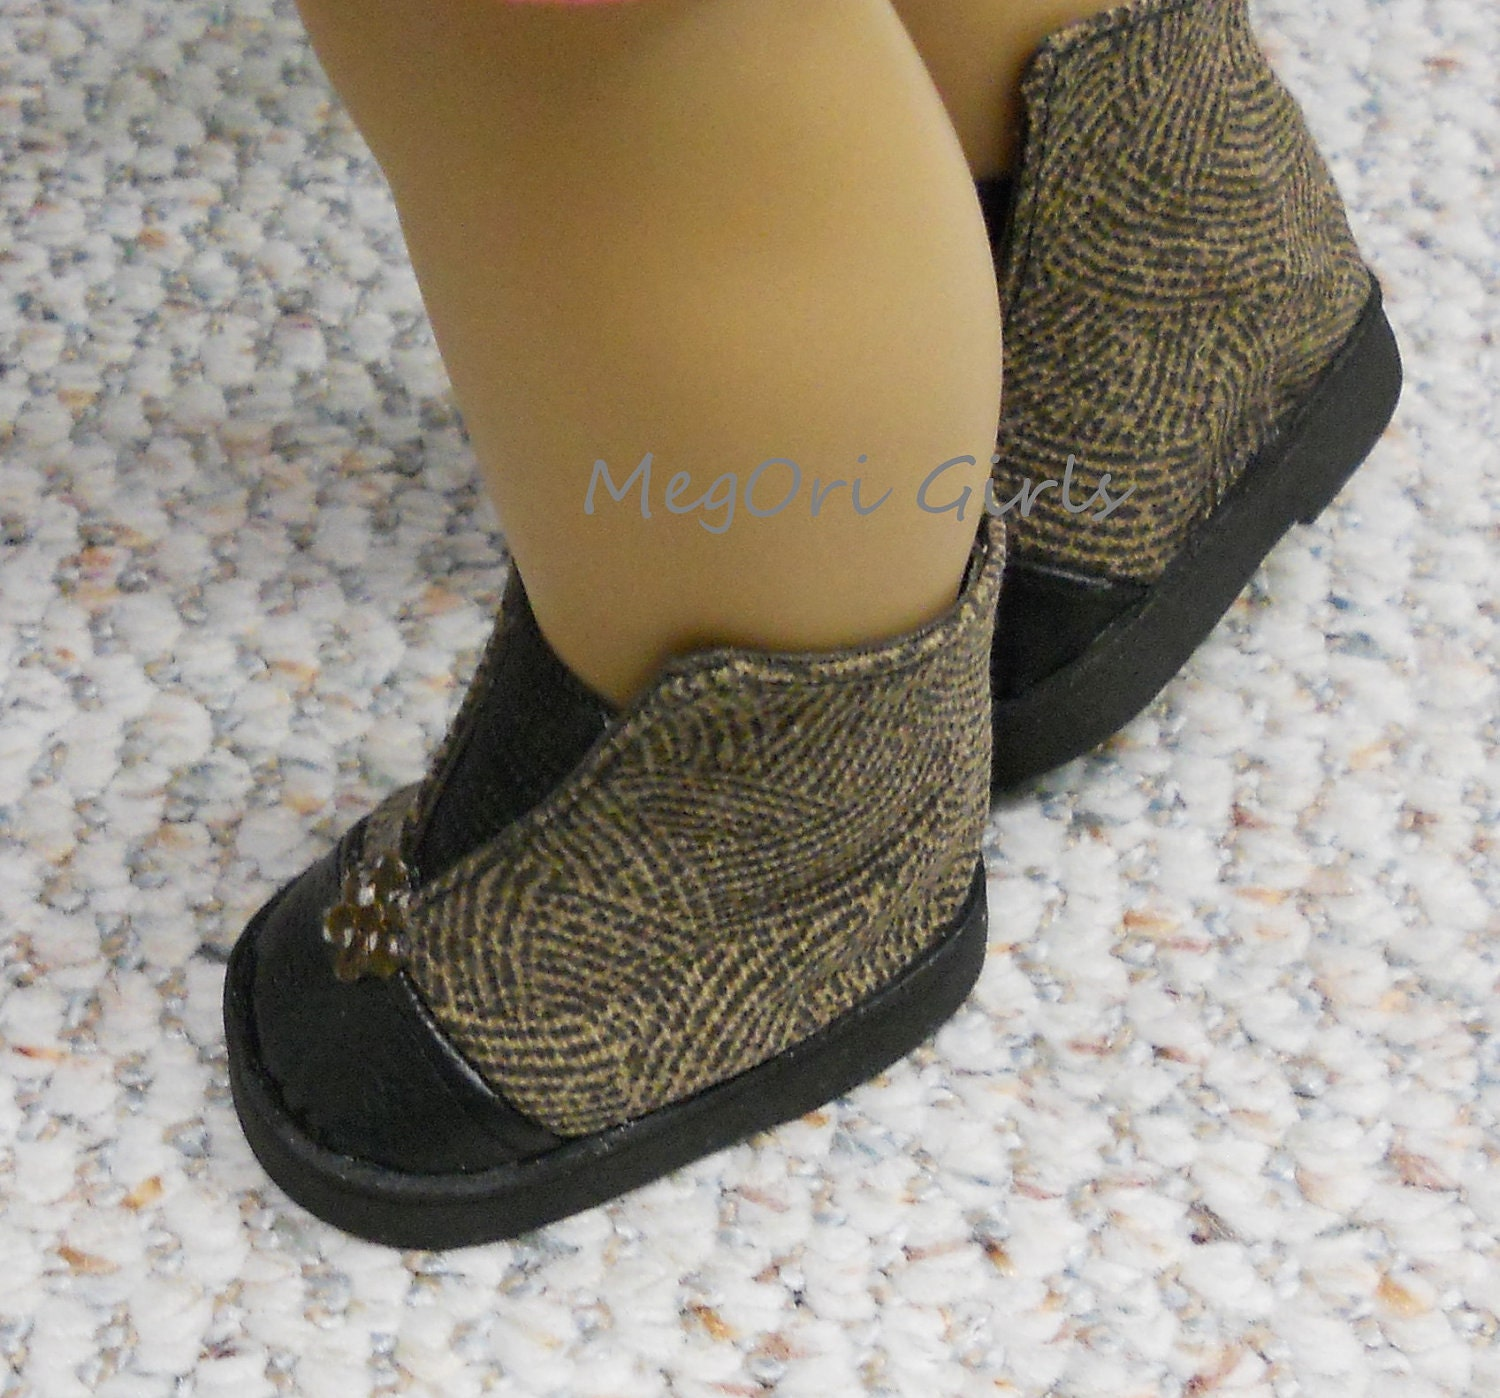 18 inch american girl doll ankle boots brown black